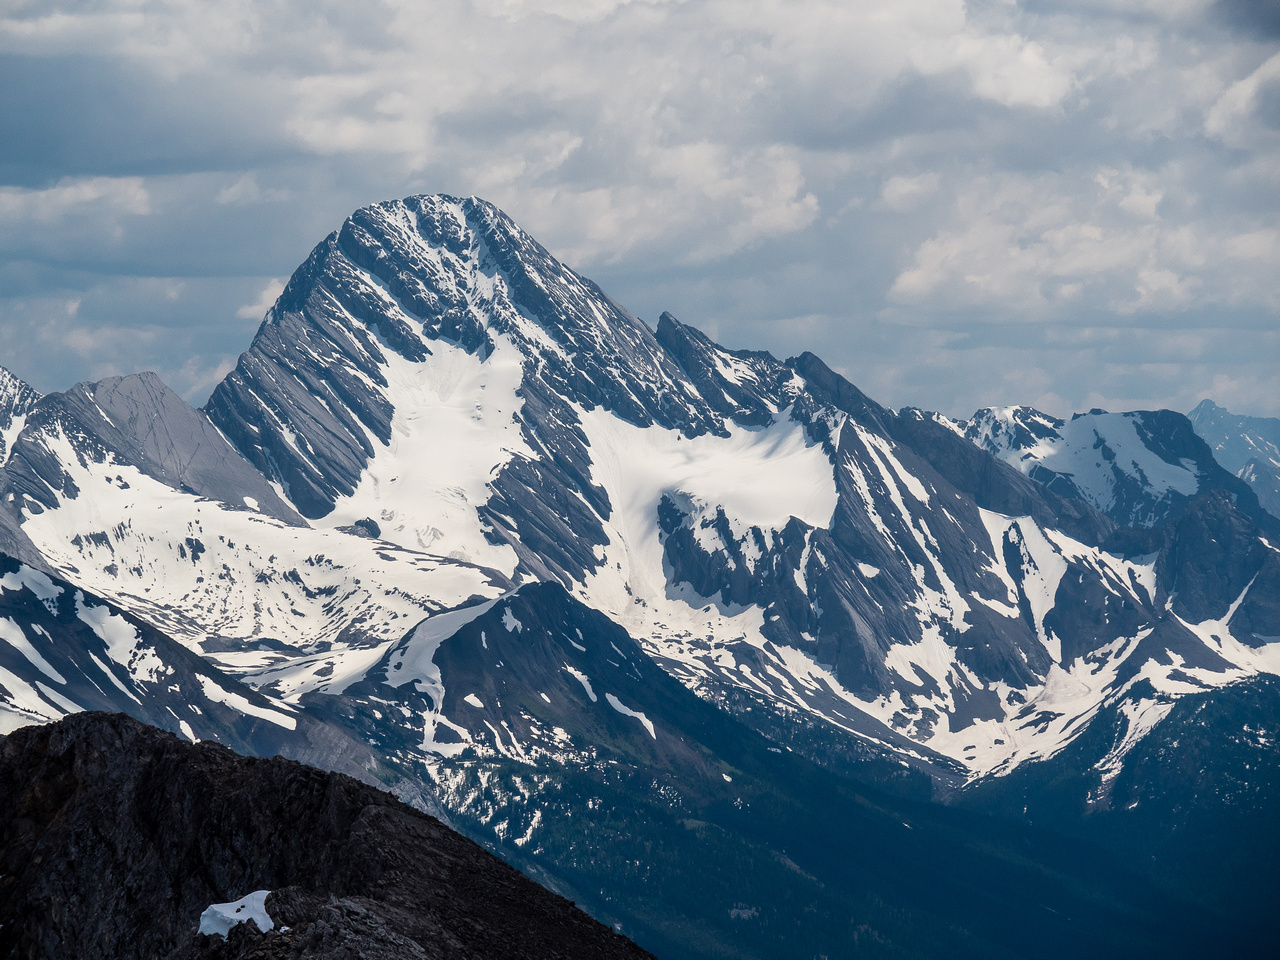 Mount Sir Douglas brings a smile to my face. What an adventure that peak was!